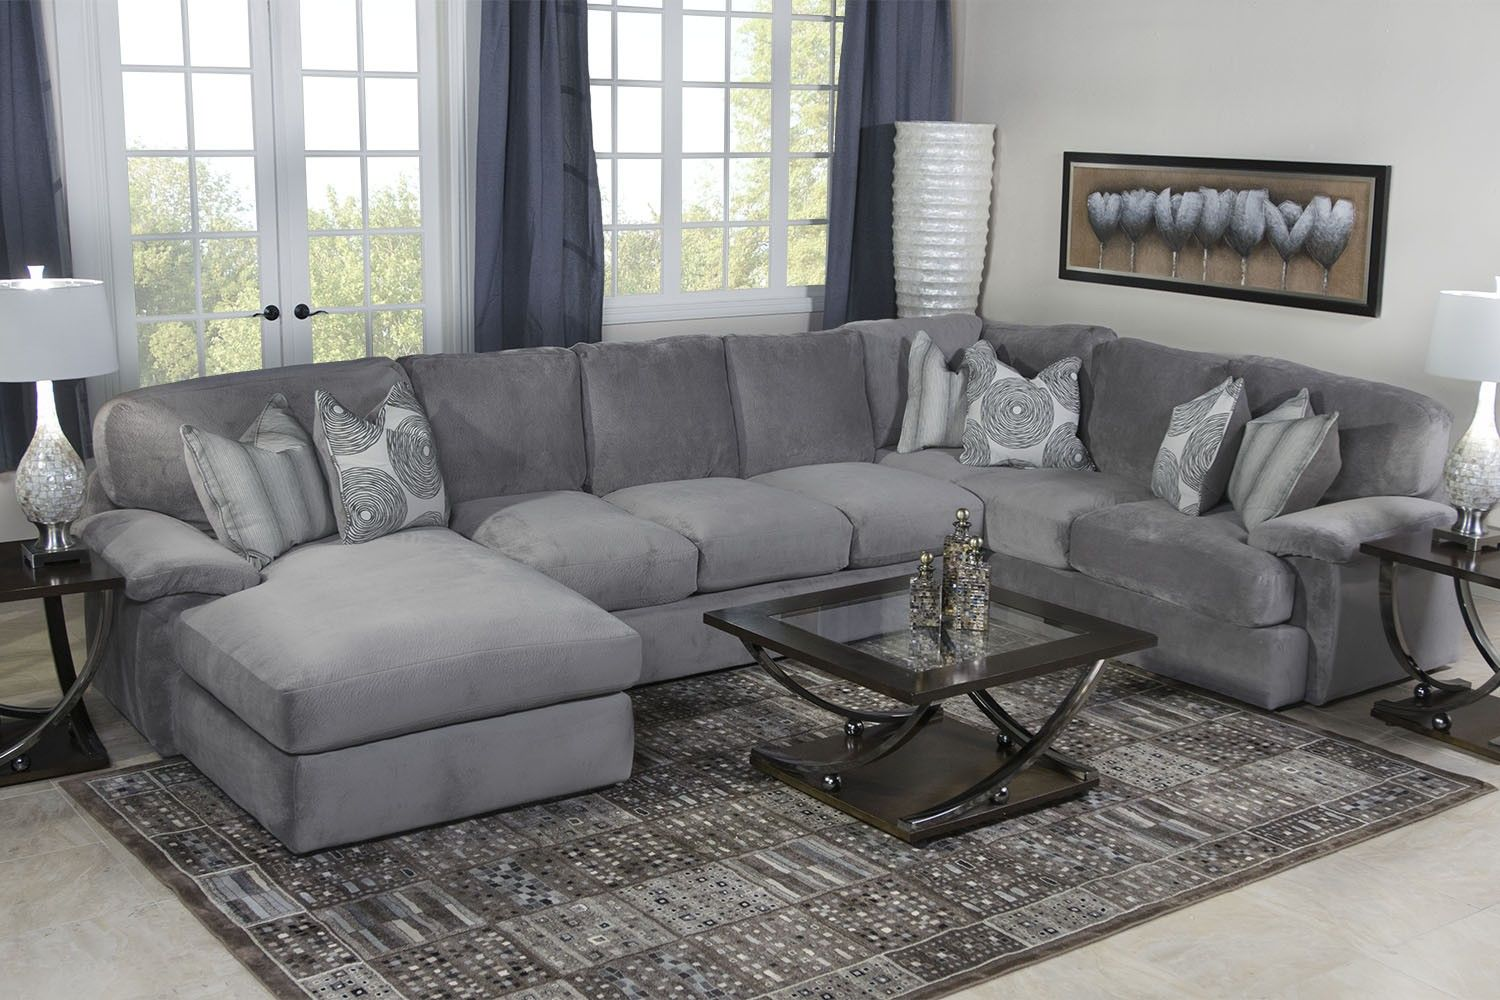 new gray sleeper sofa layout-Wonderful Gray Sleeper sofa Decoration